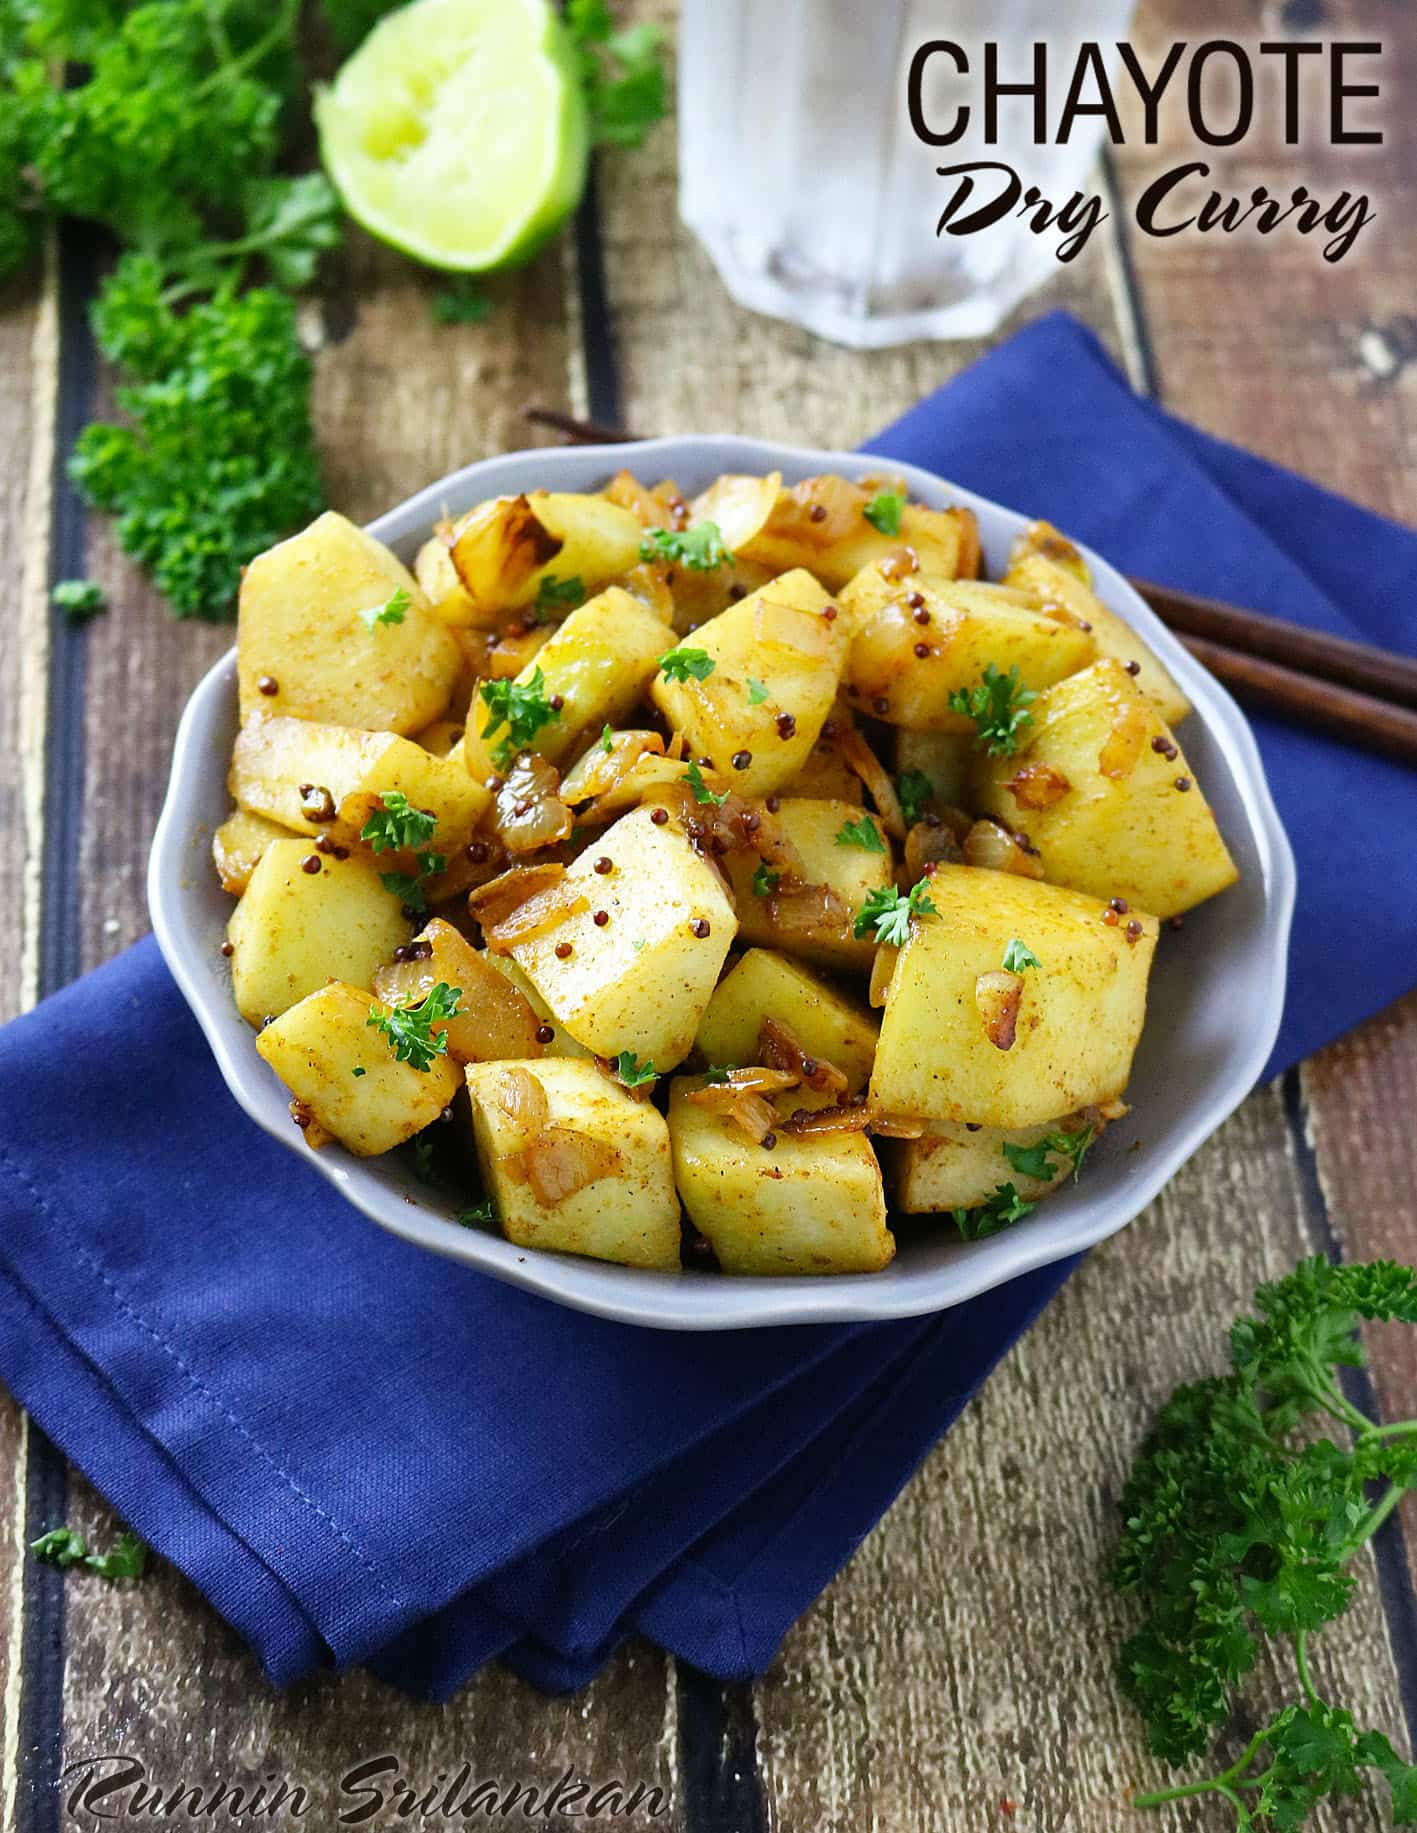 Chayote Dry Curry